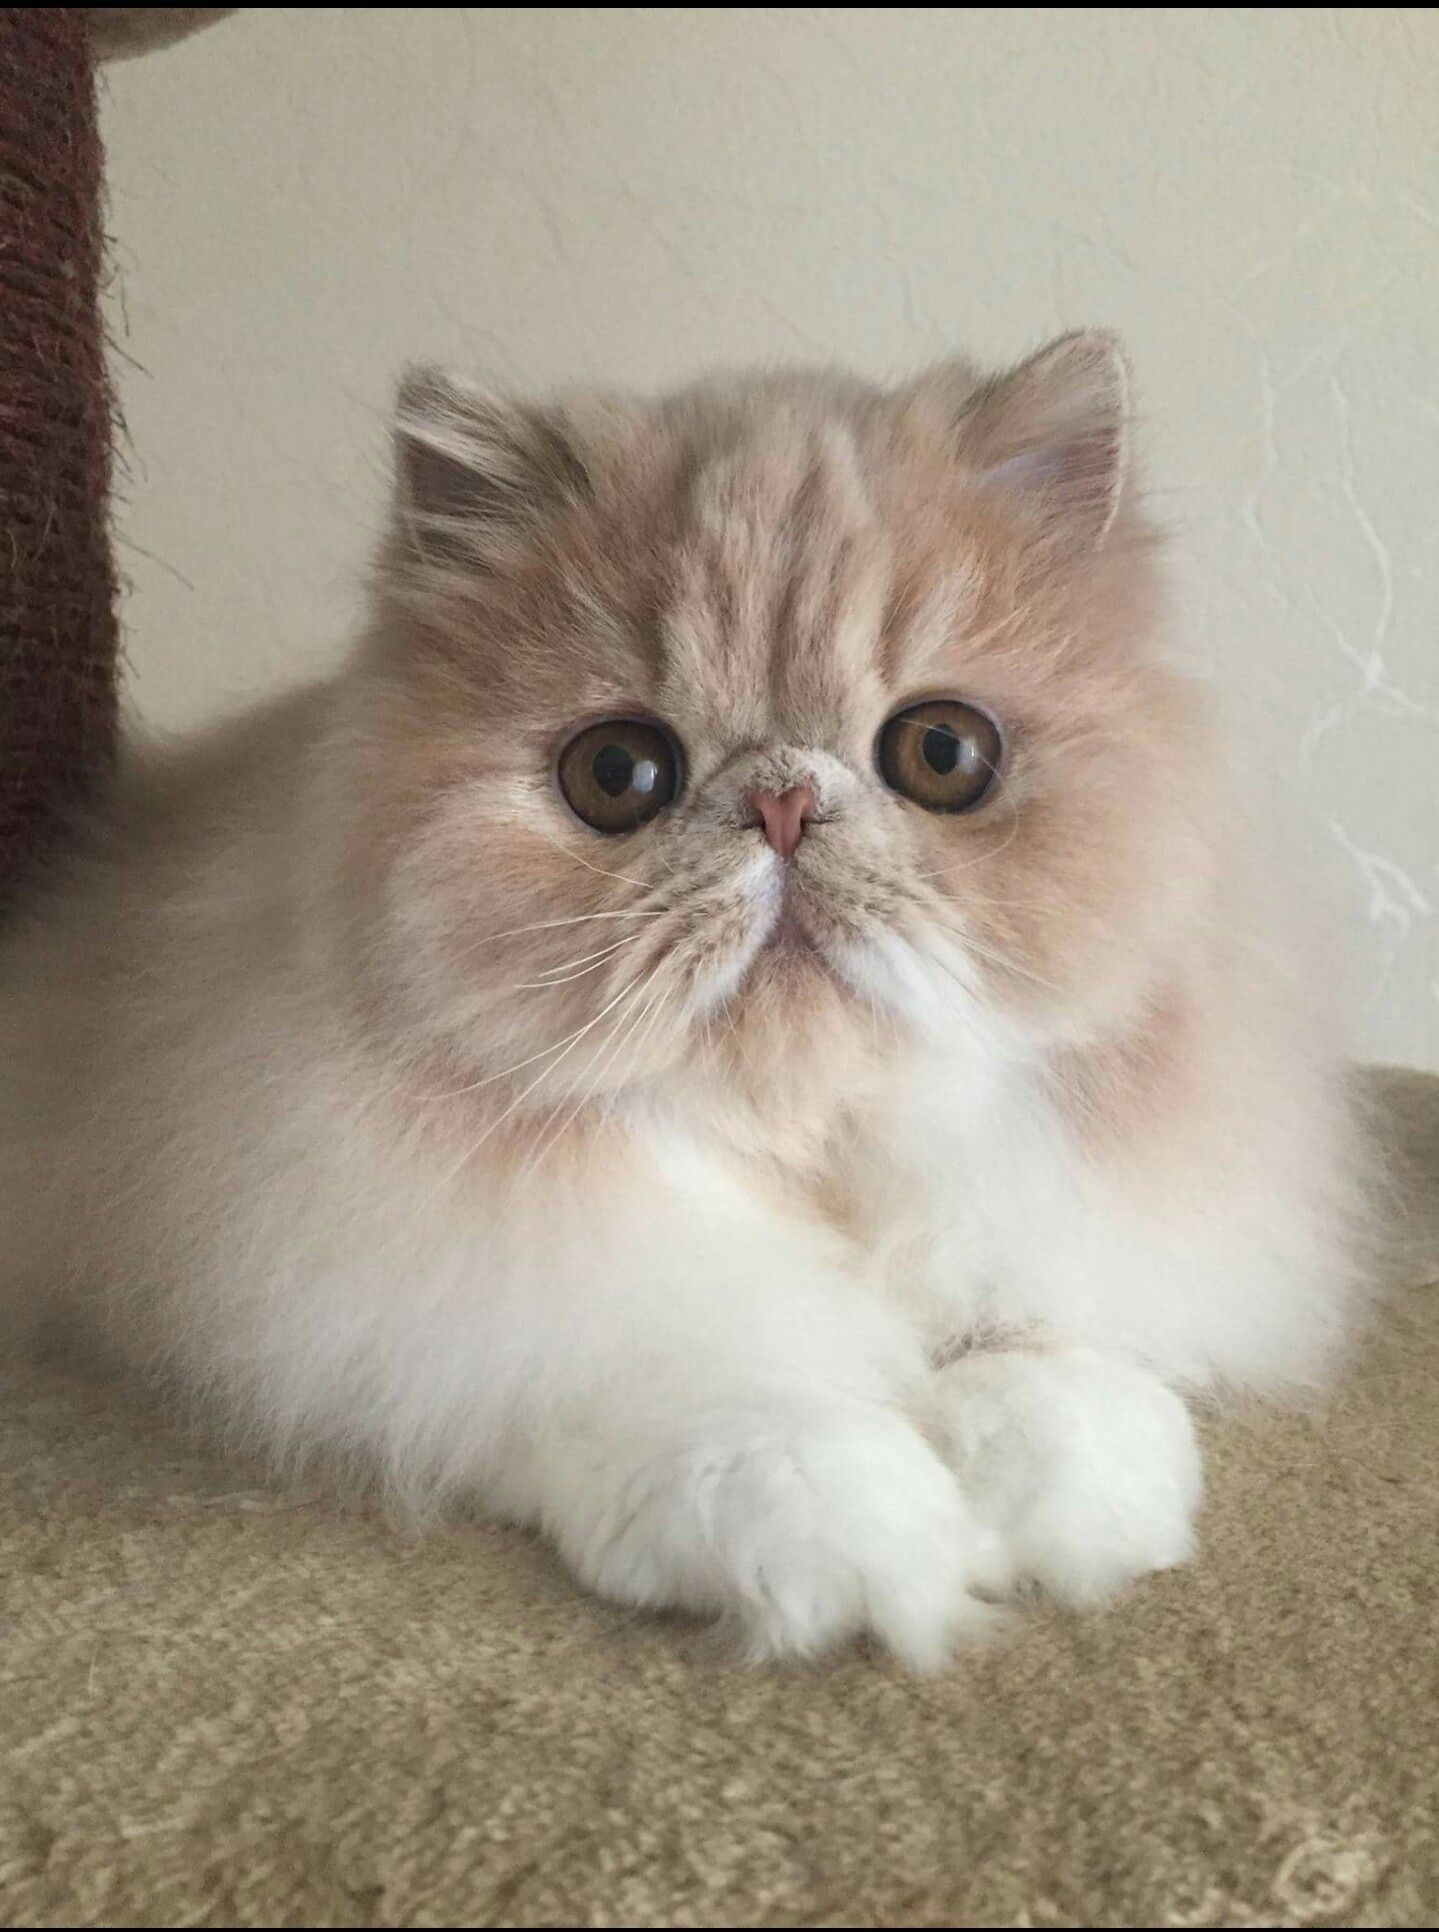 Looks like my kitty Mr. Magoo. PersianCat (With images